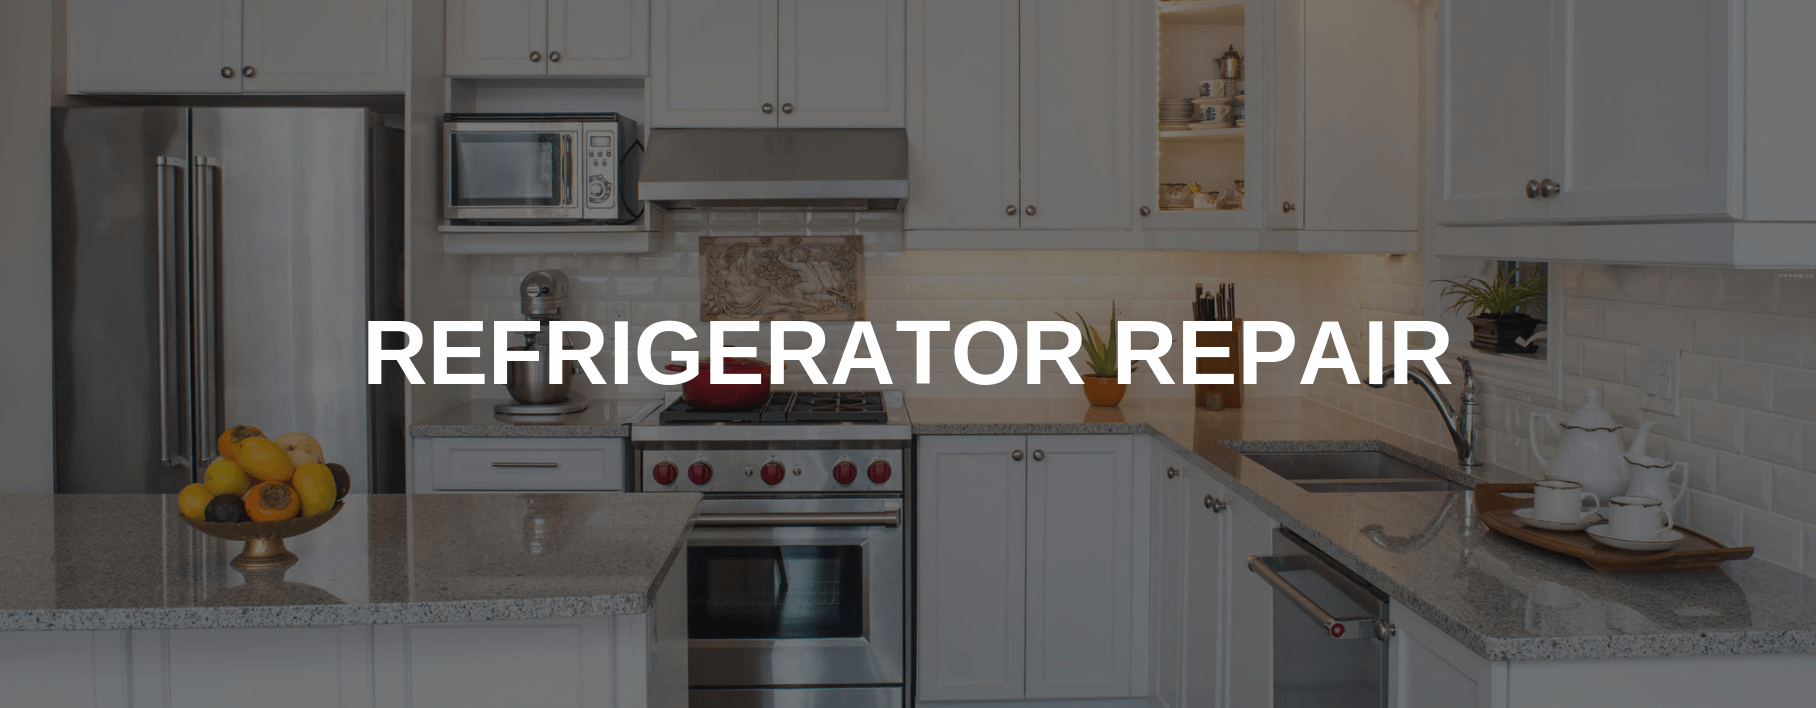 refrigerator repair baytown